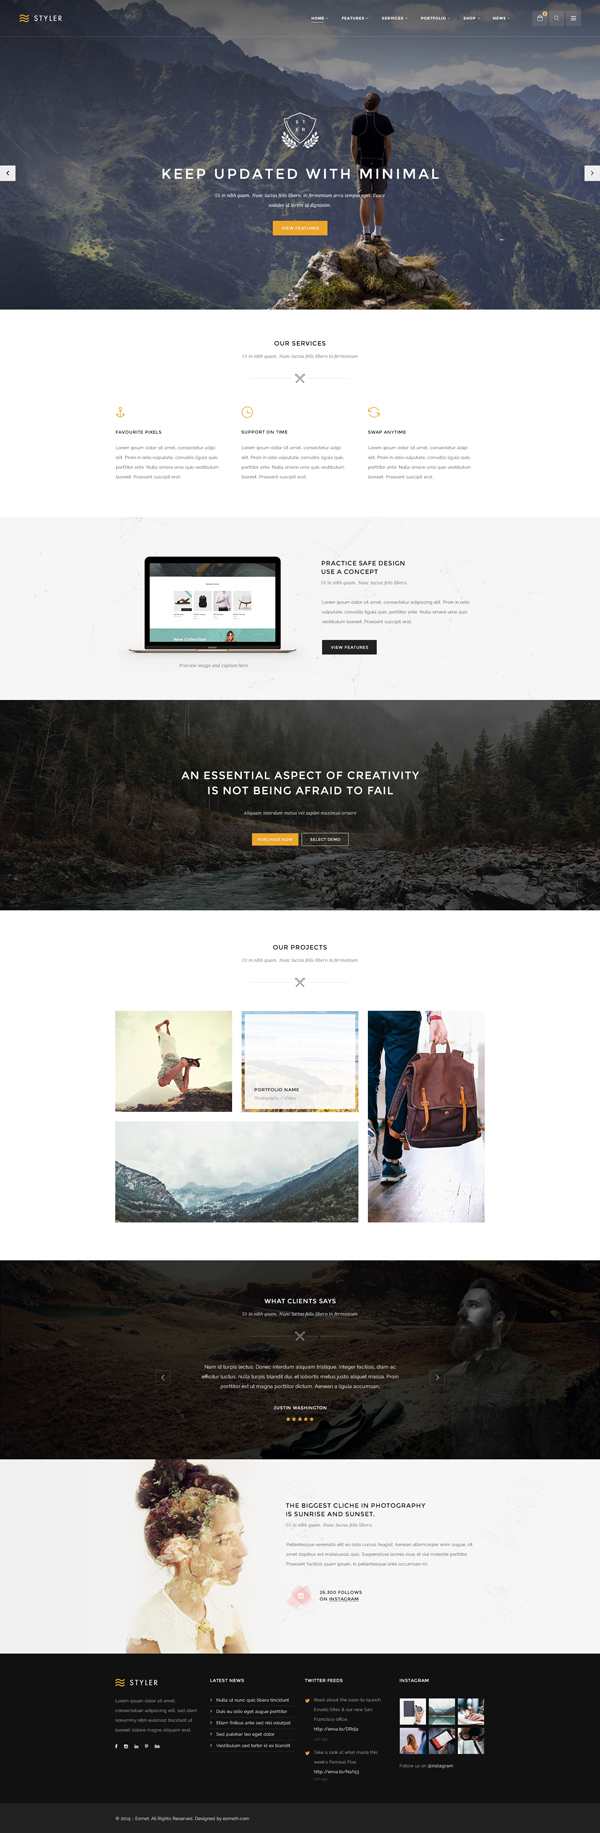 Styler - Creative Multi-Purpose PSD Template